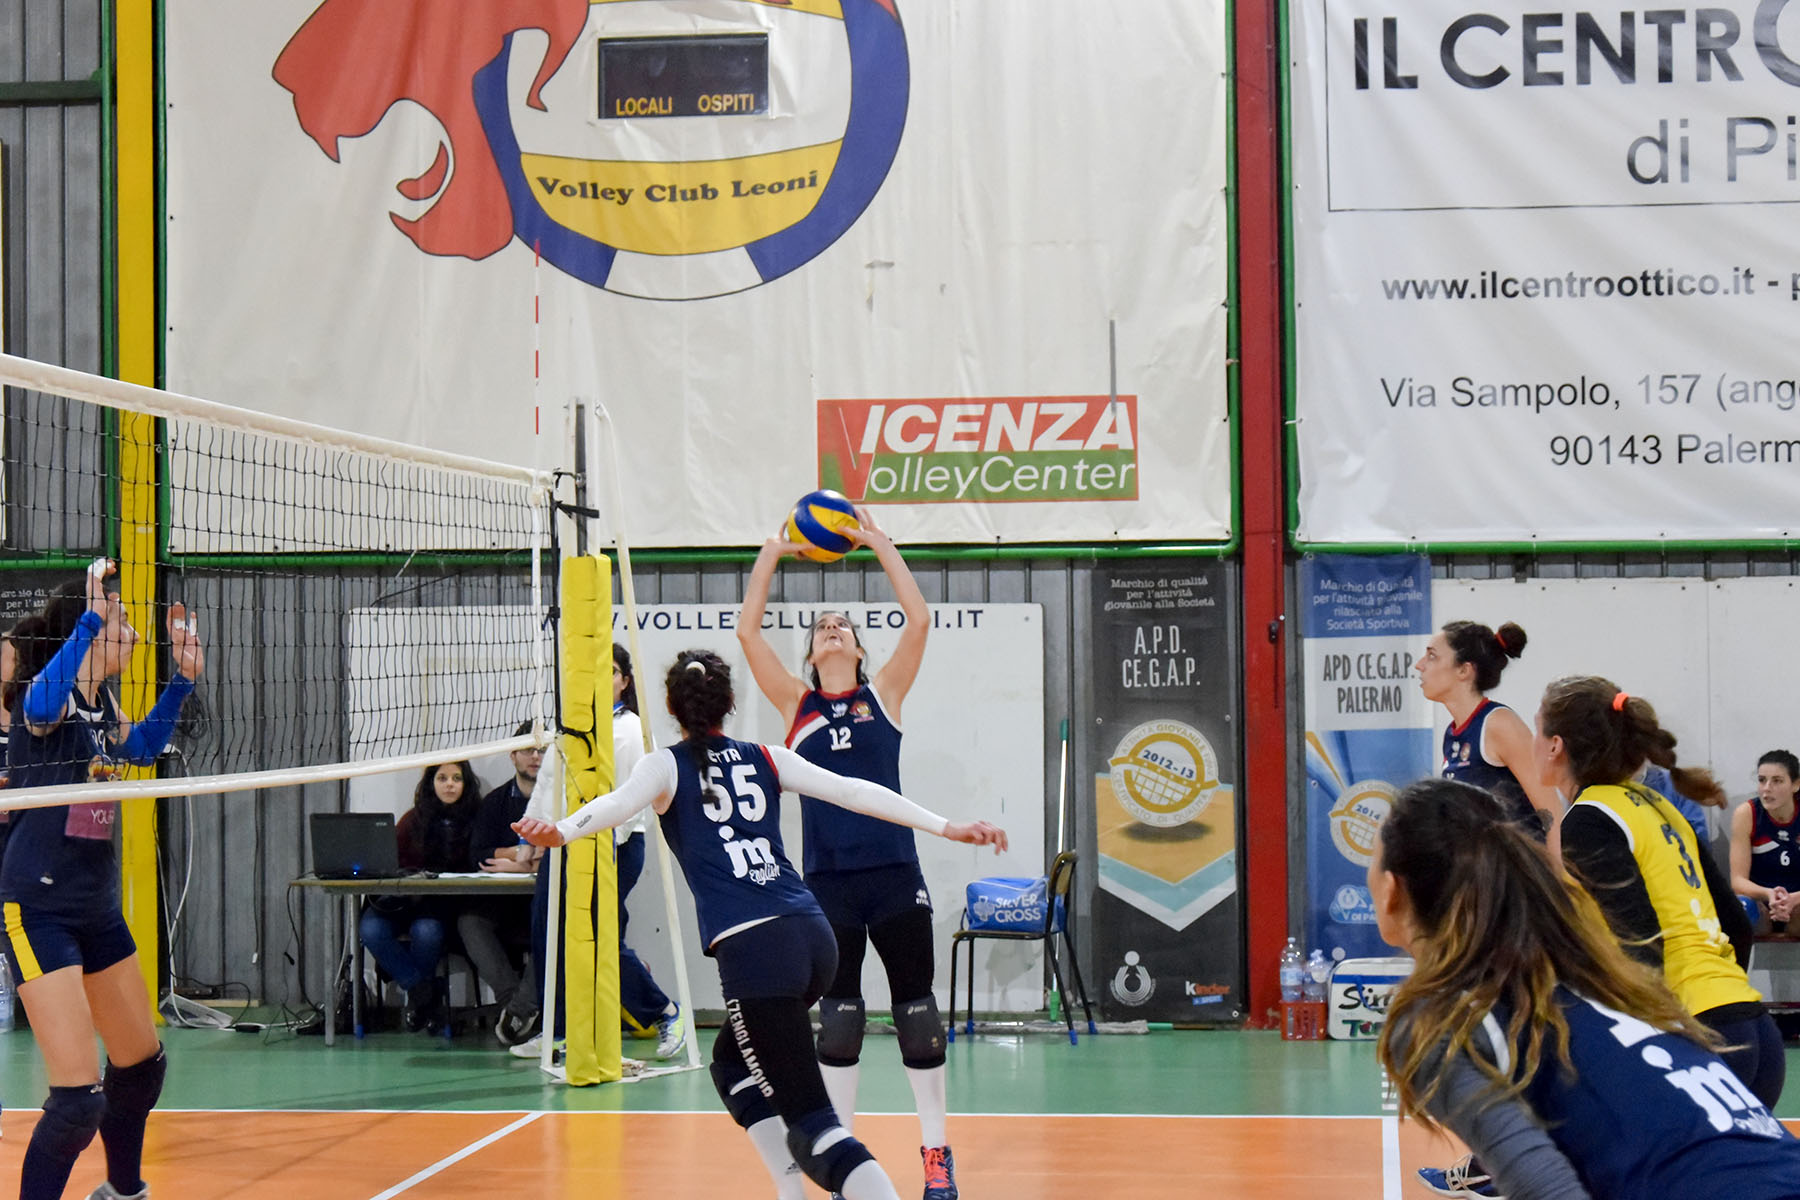 VIDEO CF | Volley Club Leoni – Yourlife Mondello 3-0